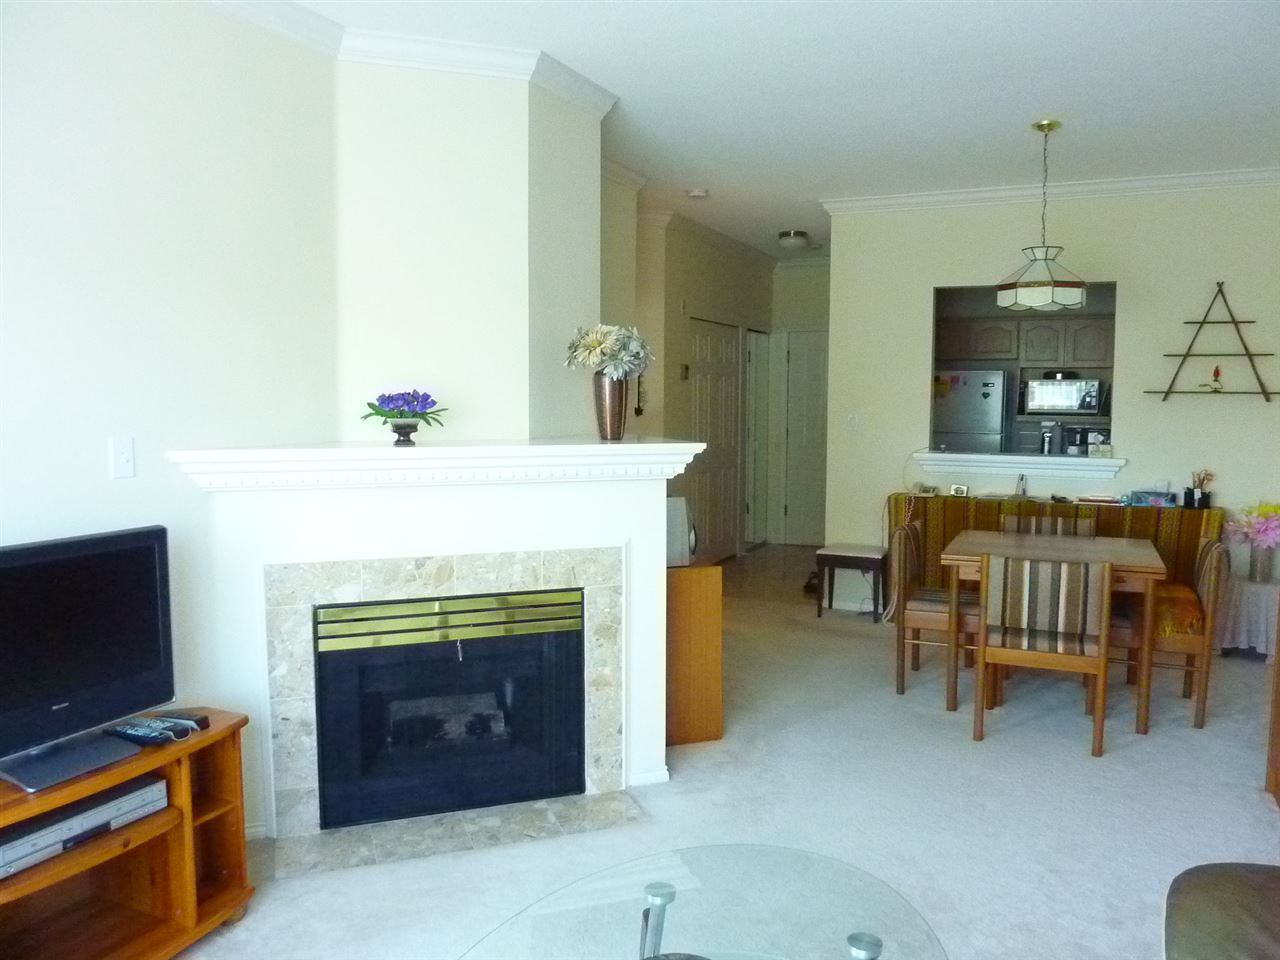 Photo 8: 211 8580 GENERAL CURRIE Road in Richmond: Brighouse South Condo for sale : MLS® # R2200455